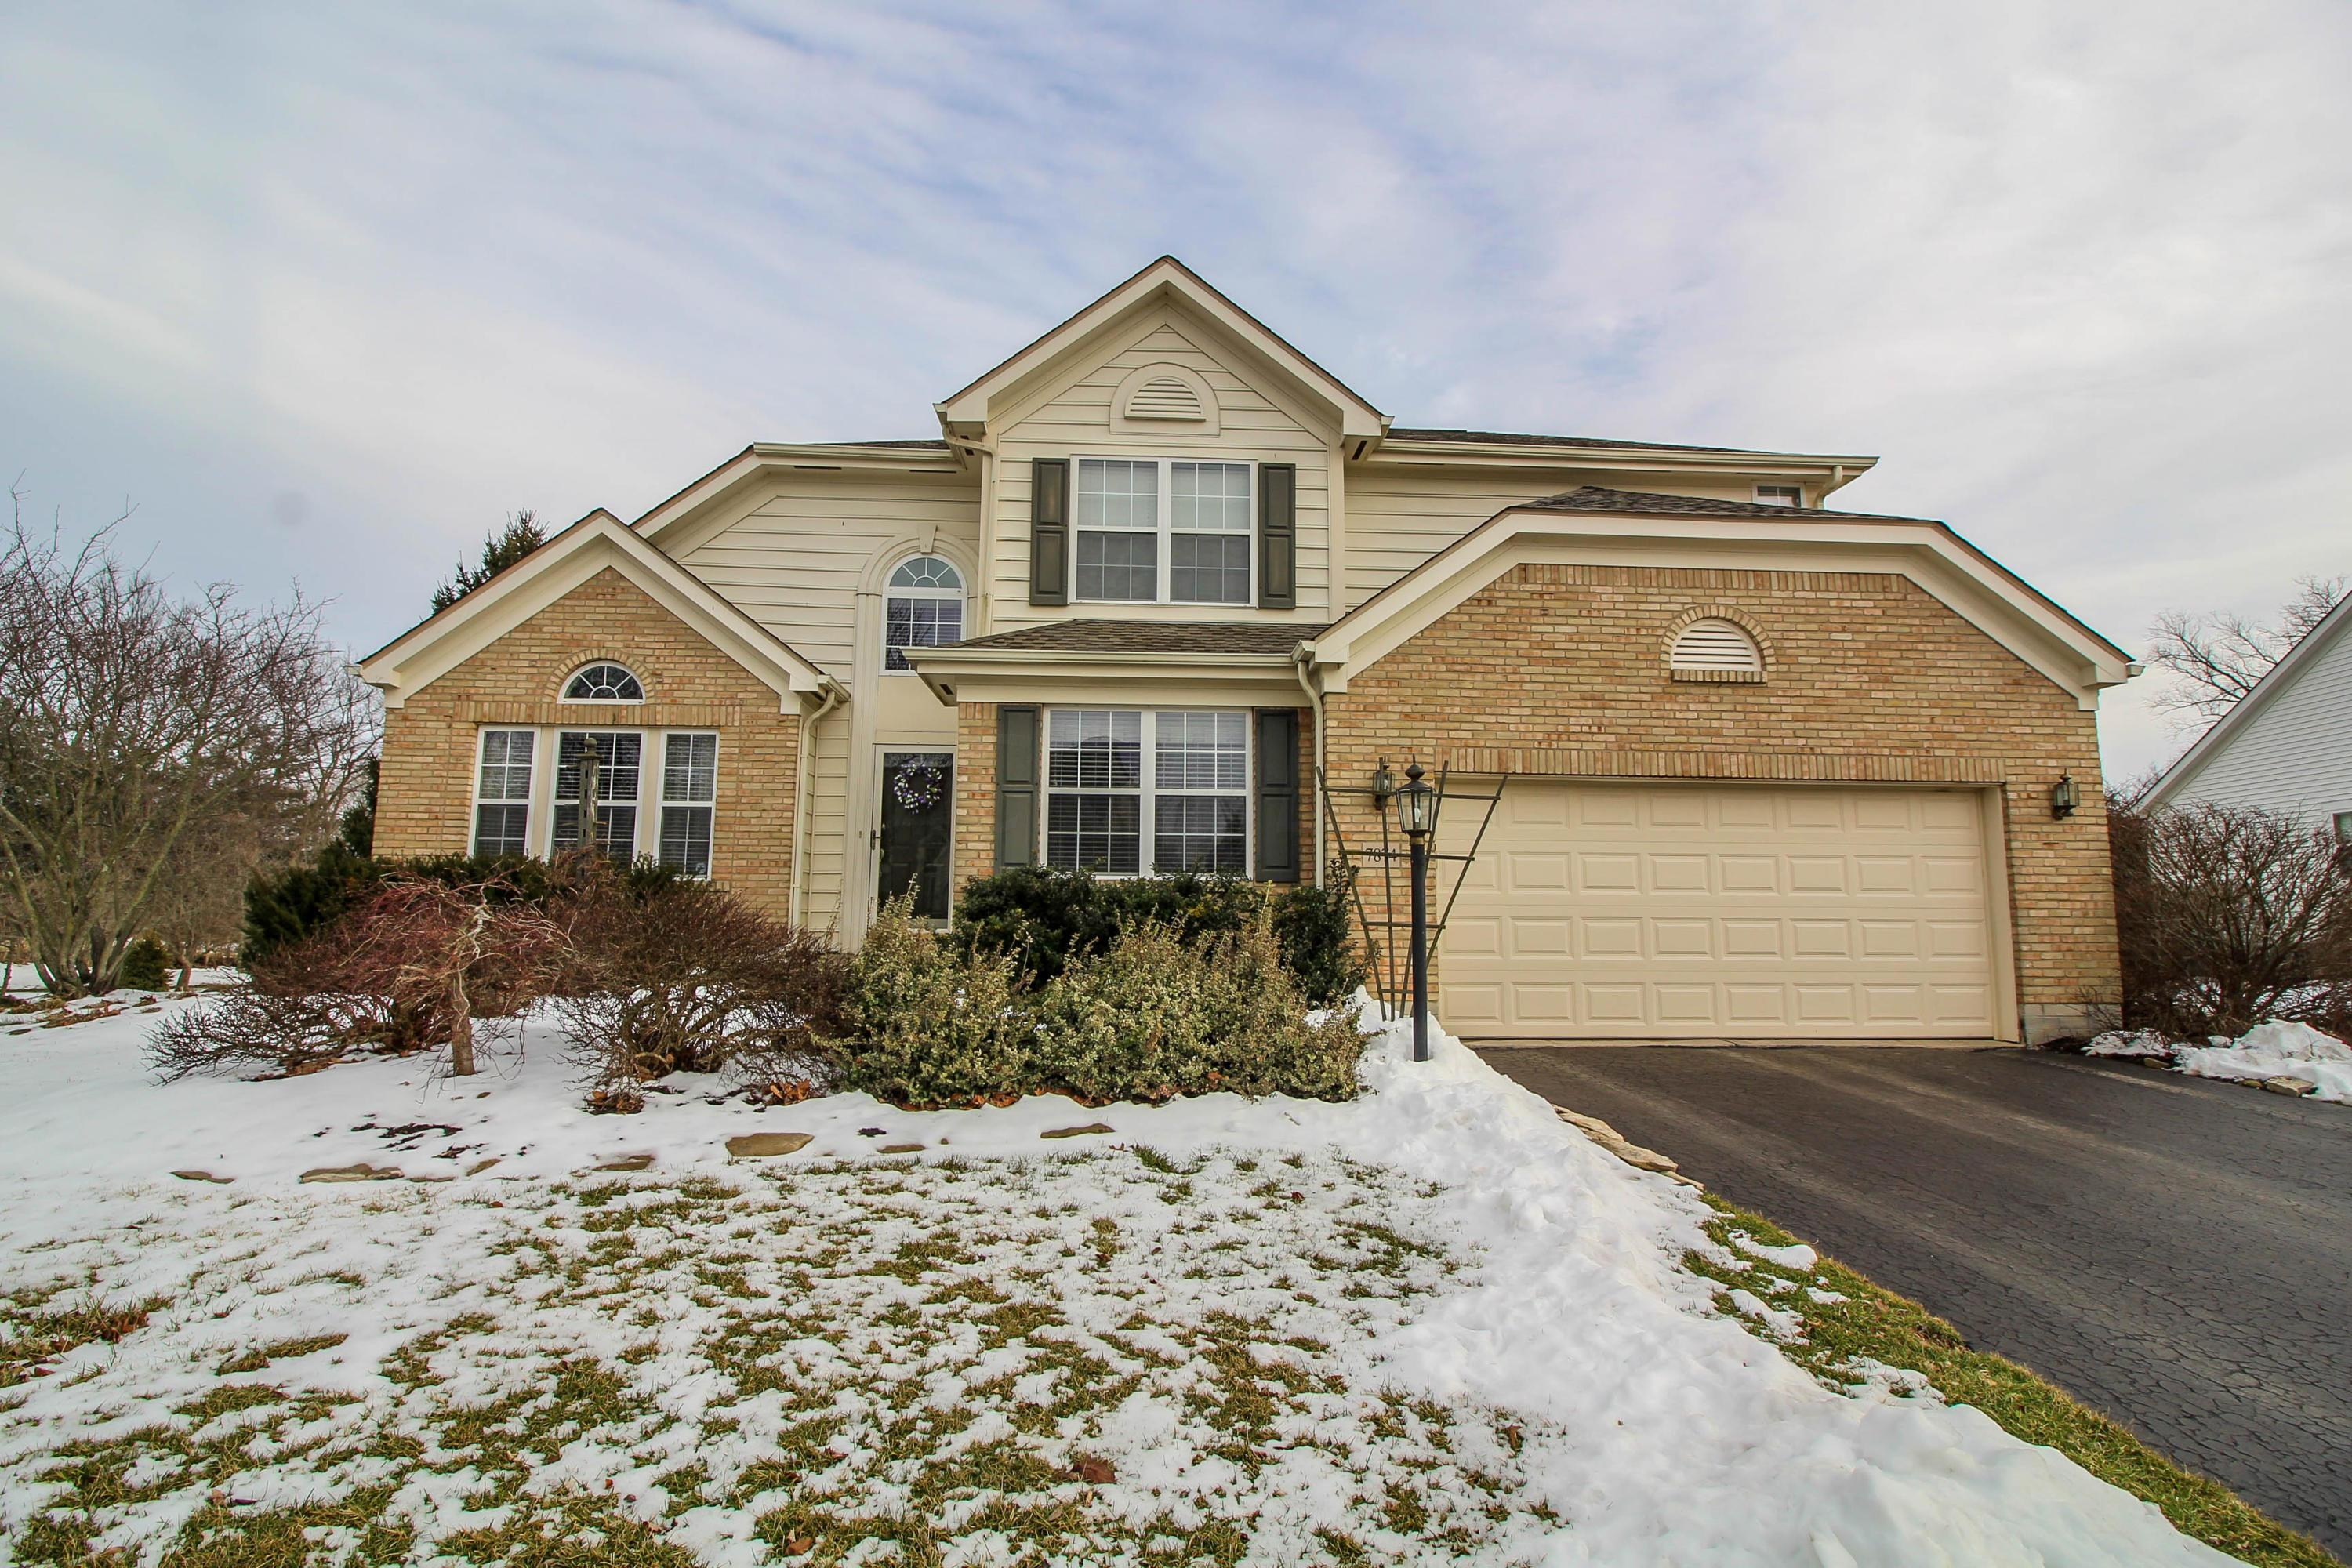 7874 Wiltshire Drive, Dublin, OH 43016